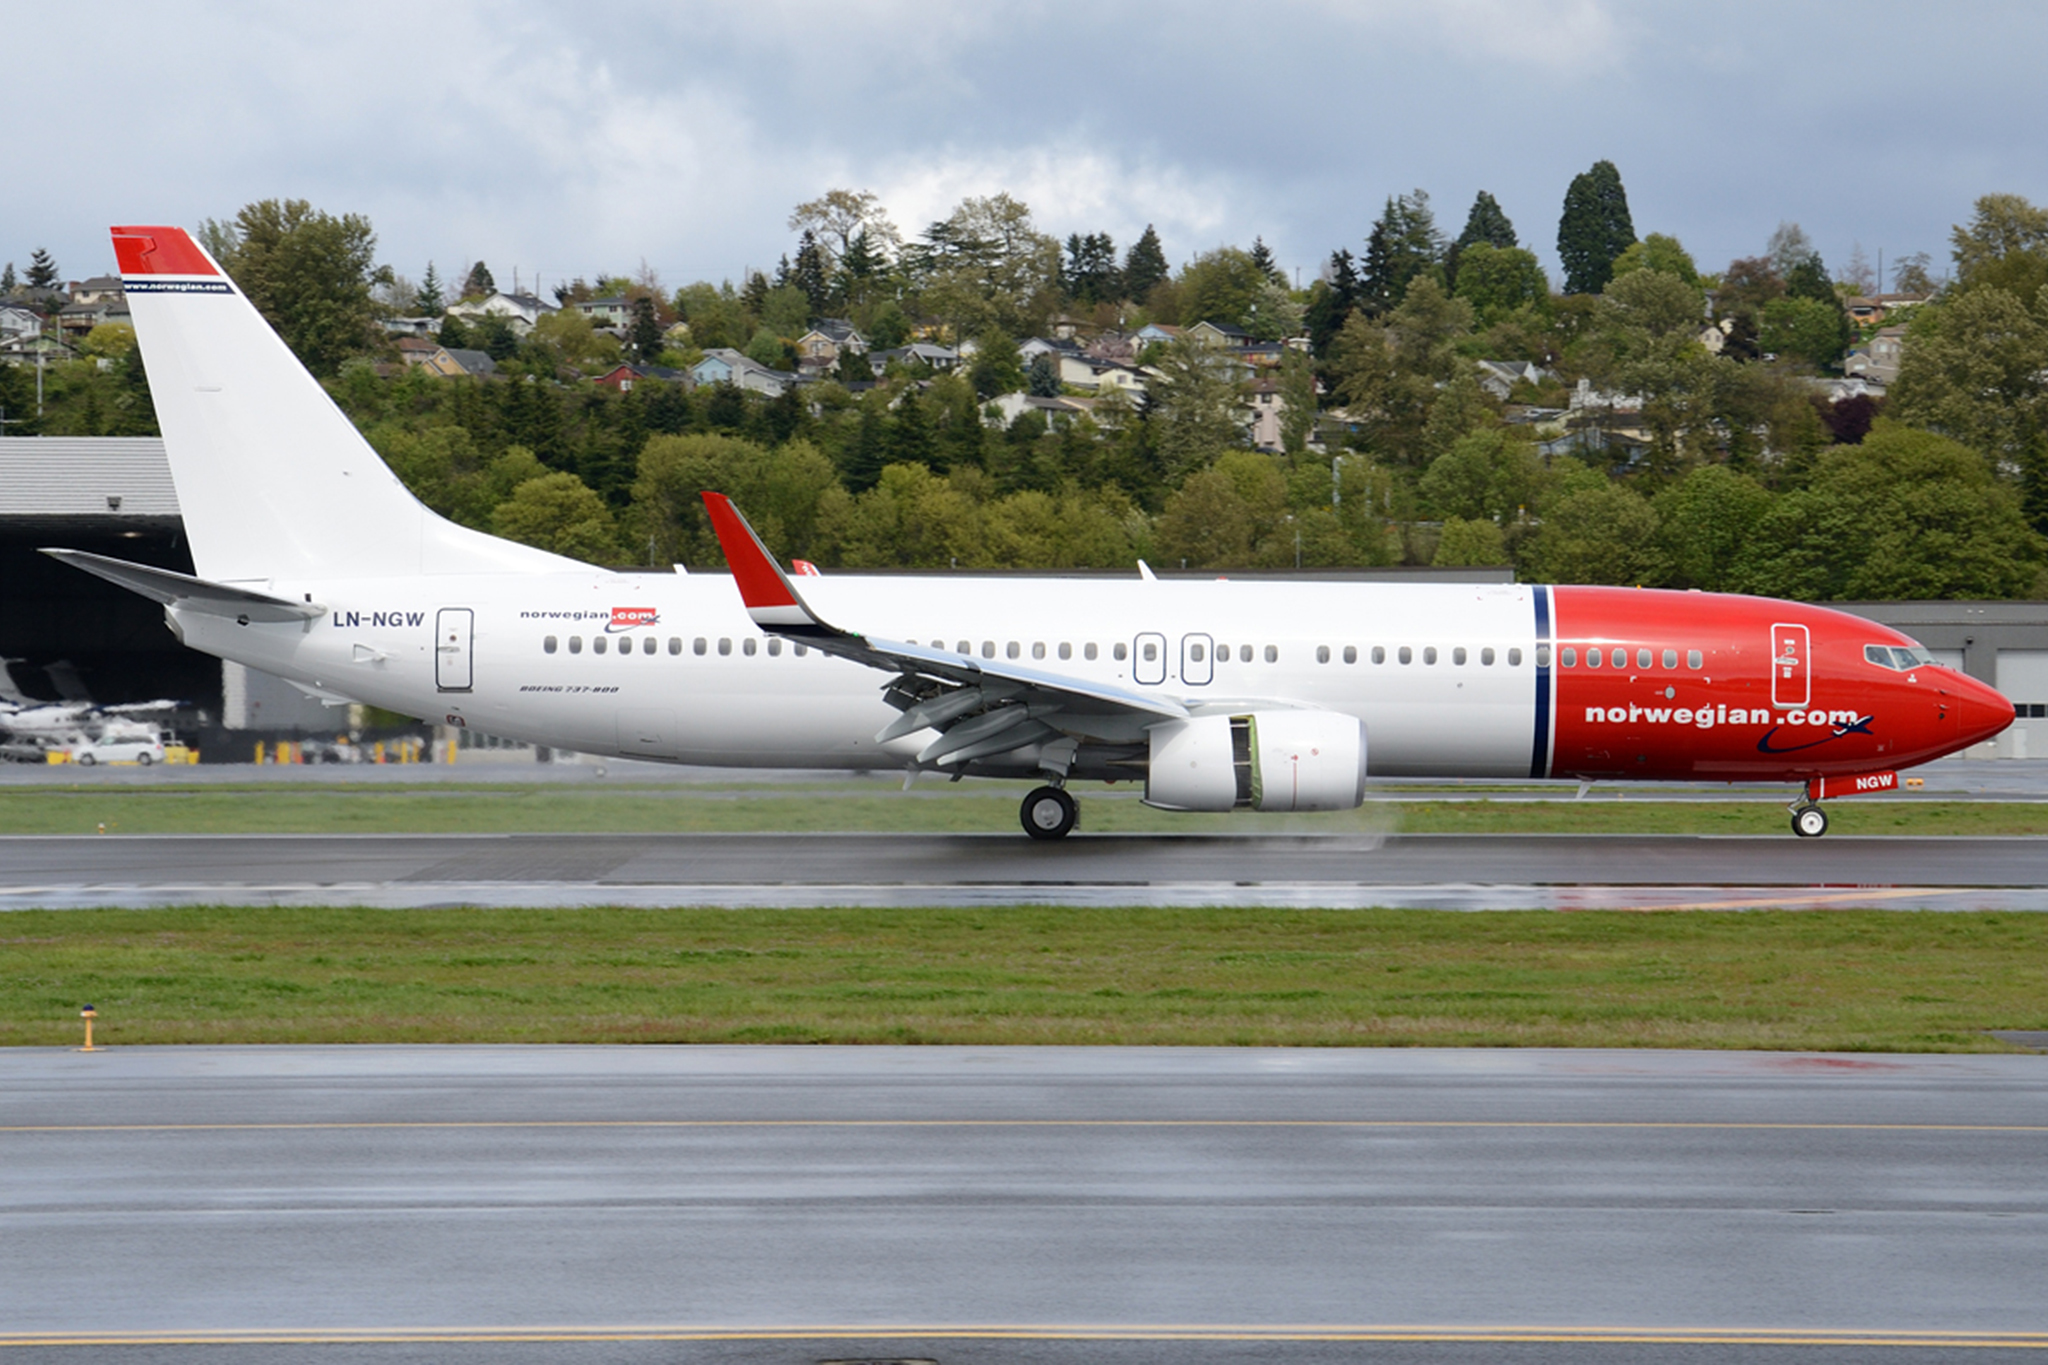 Norwegian Air lets you fly to Europe for just $65